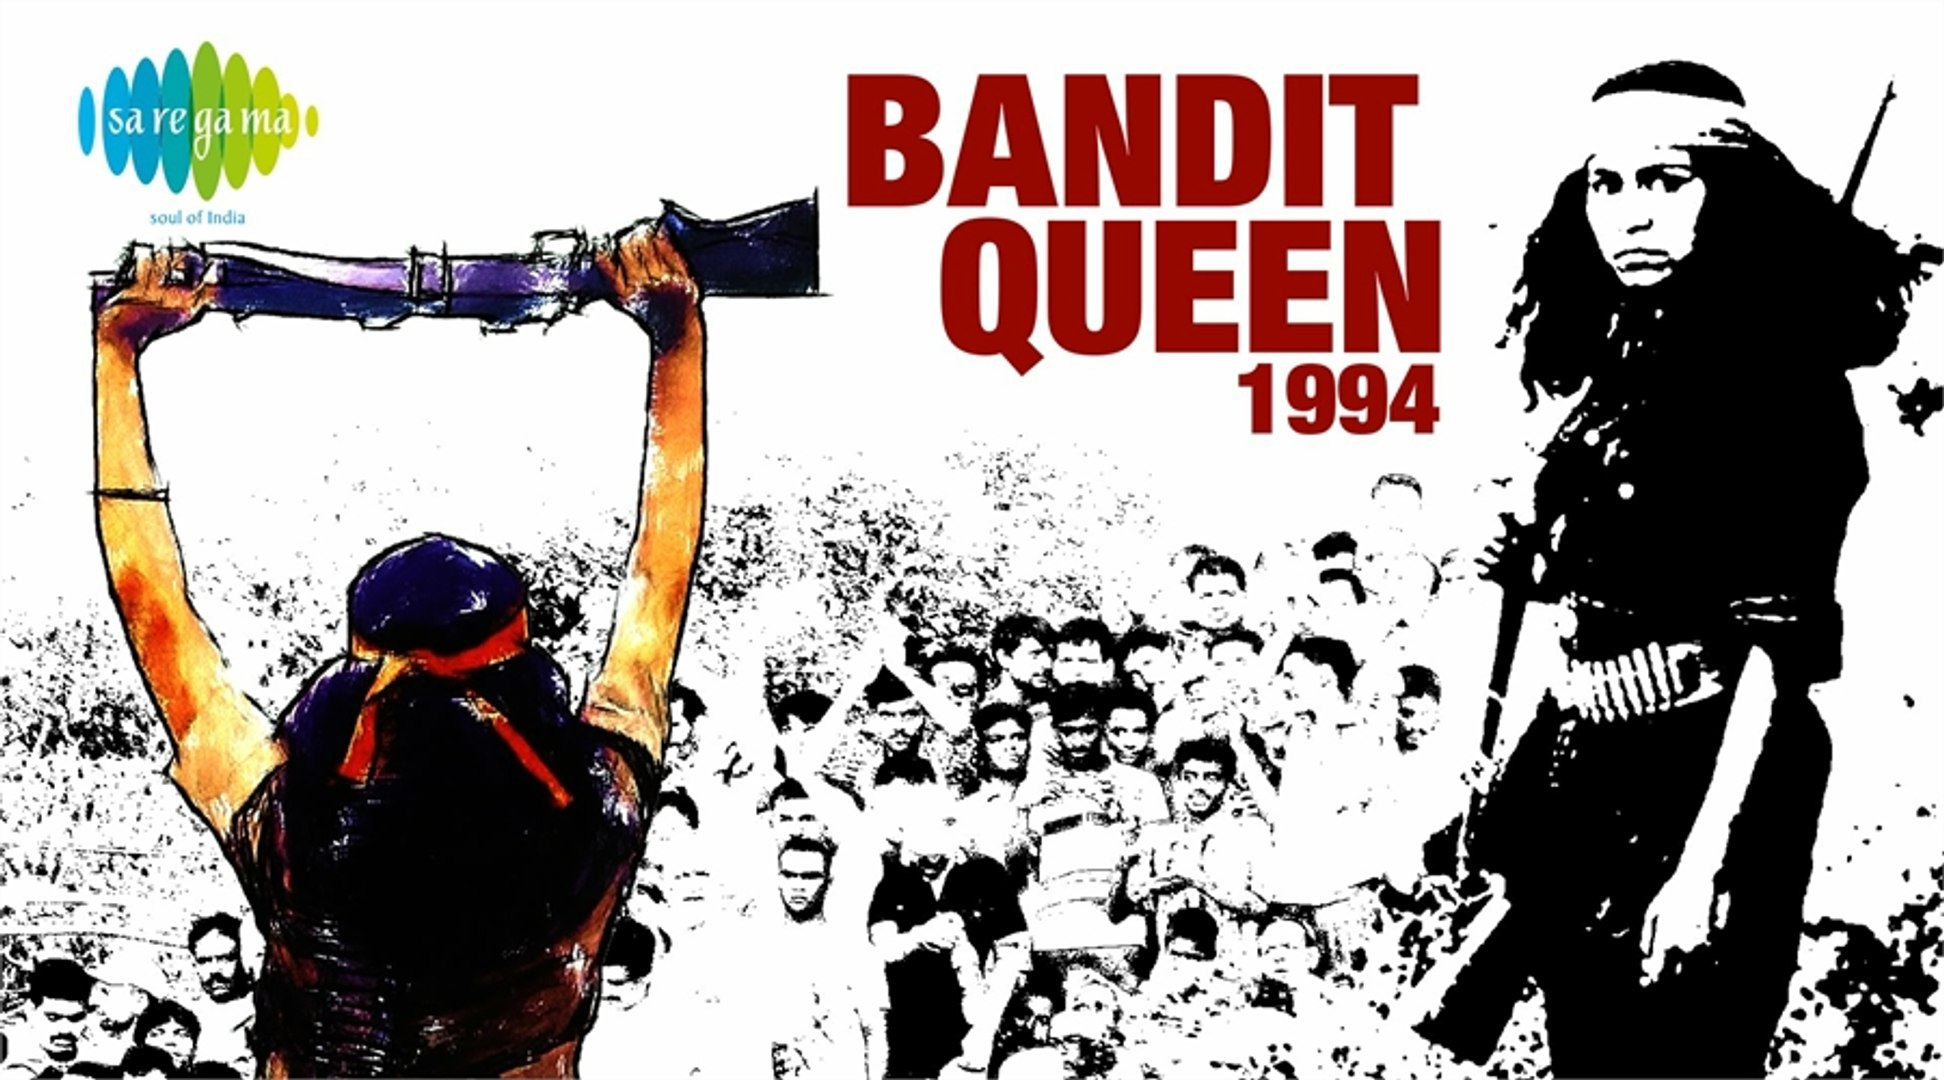 bandit queen full movie download for mobile